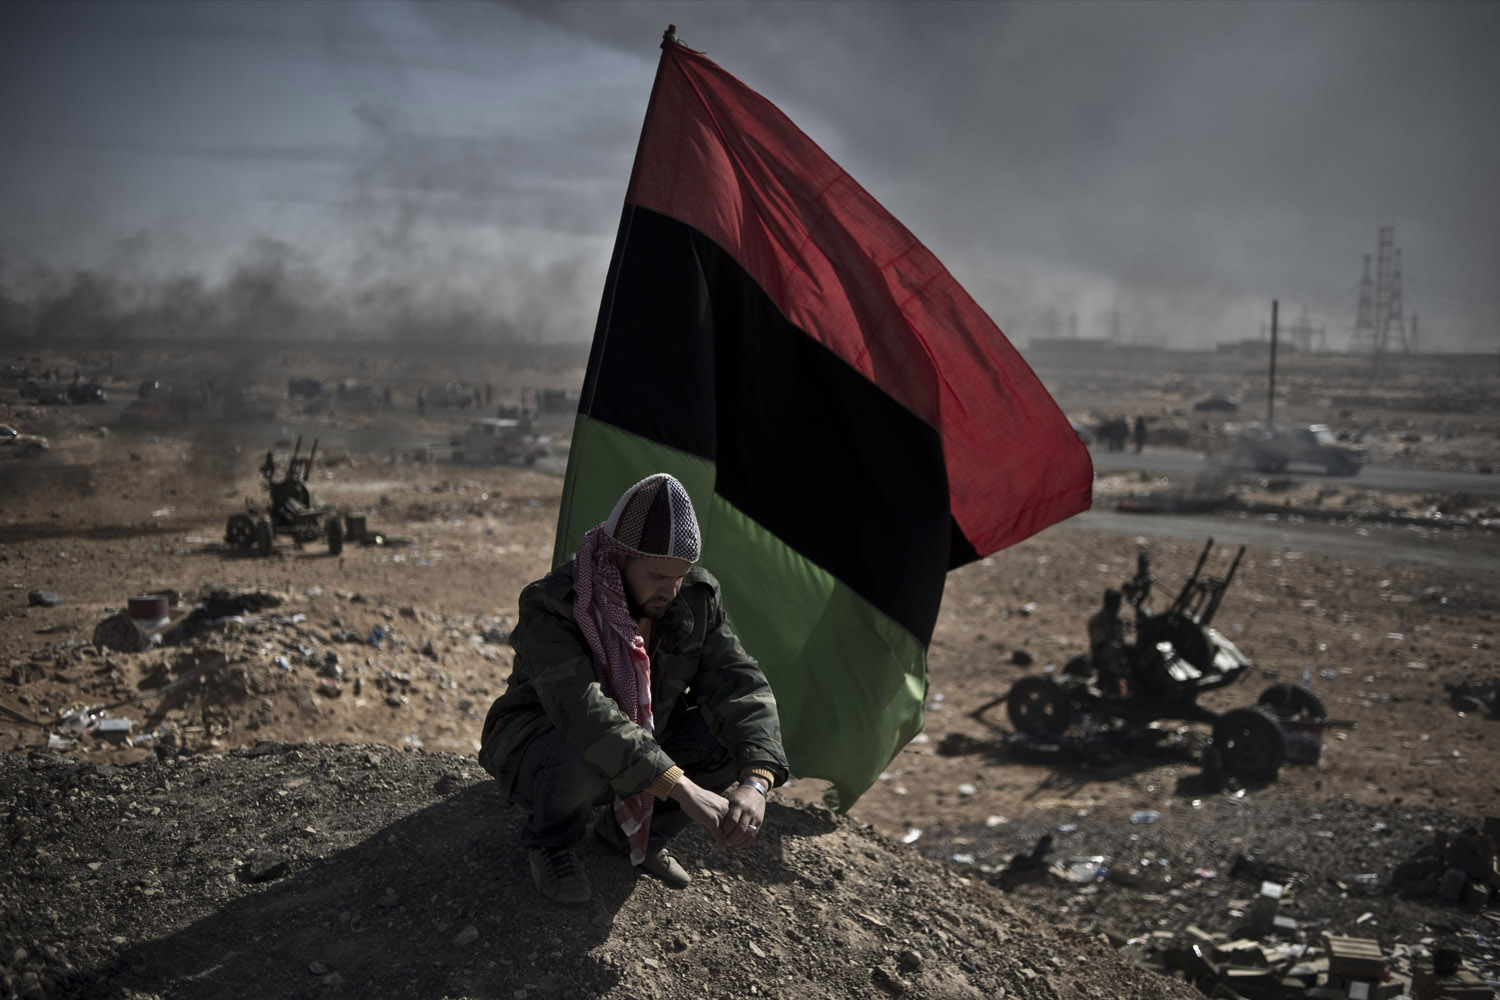 March 11, 2011. An opposition fighter rests under a rebel flag in the middle of the battlefield in Ras Lanuf, Libya.